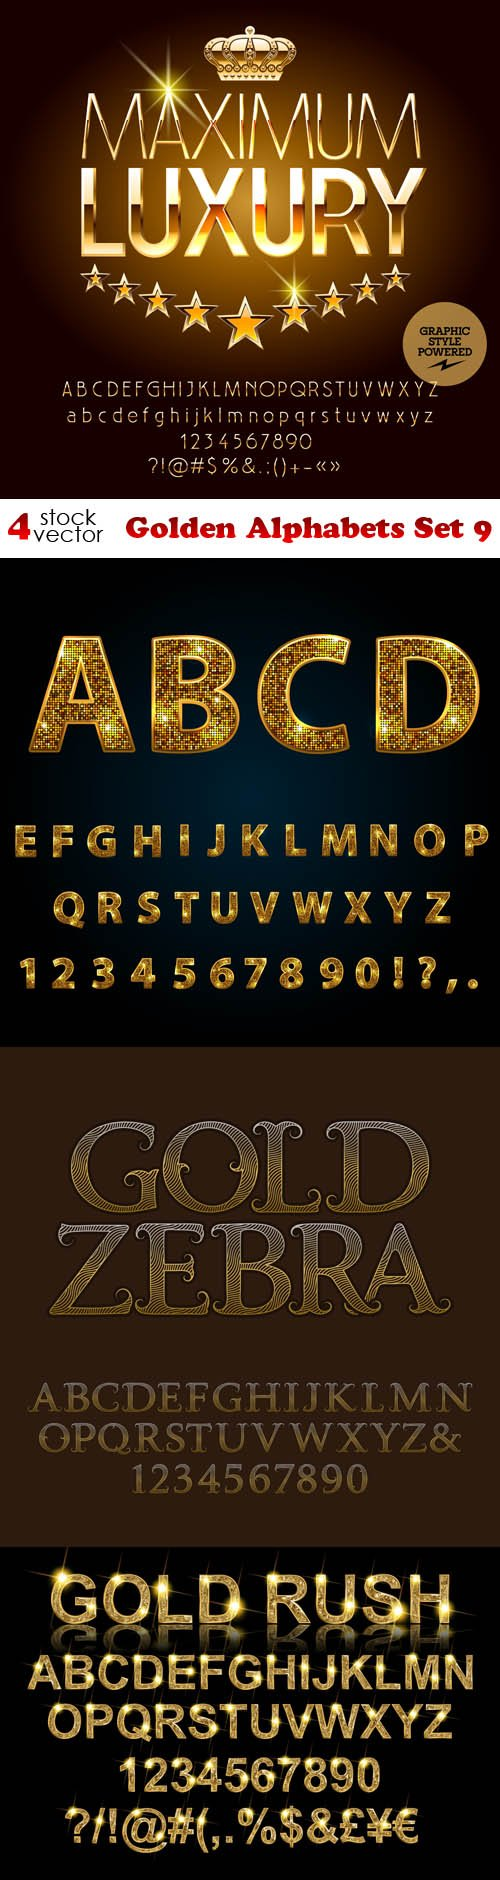 Vectors - Golden Alphabets Set 9